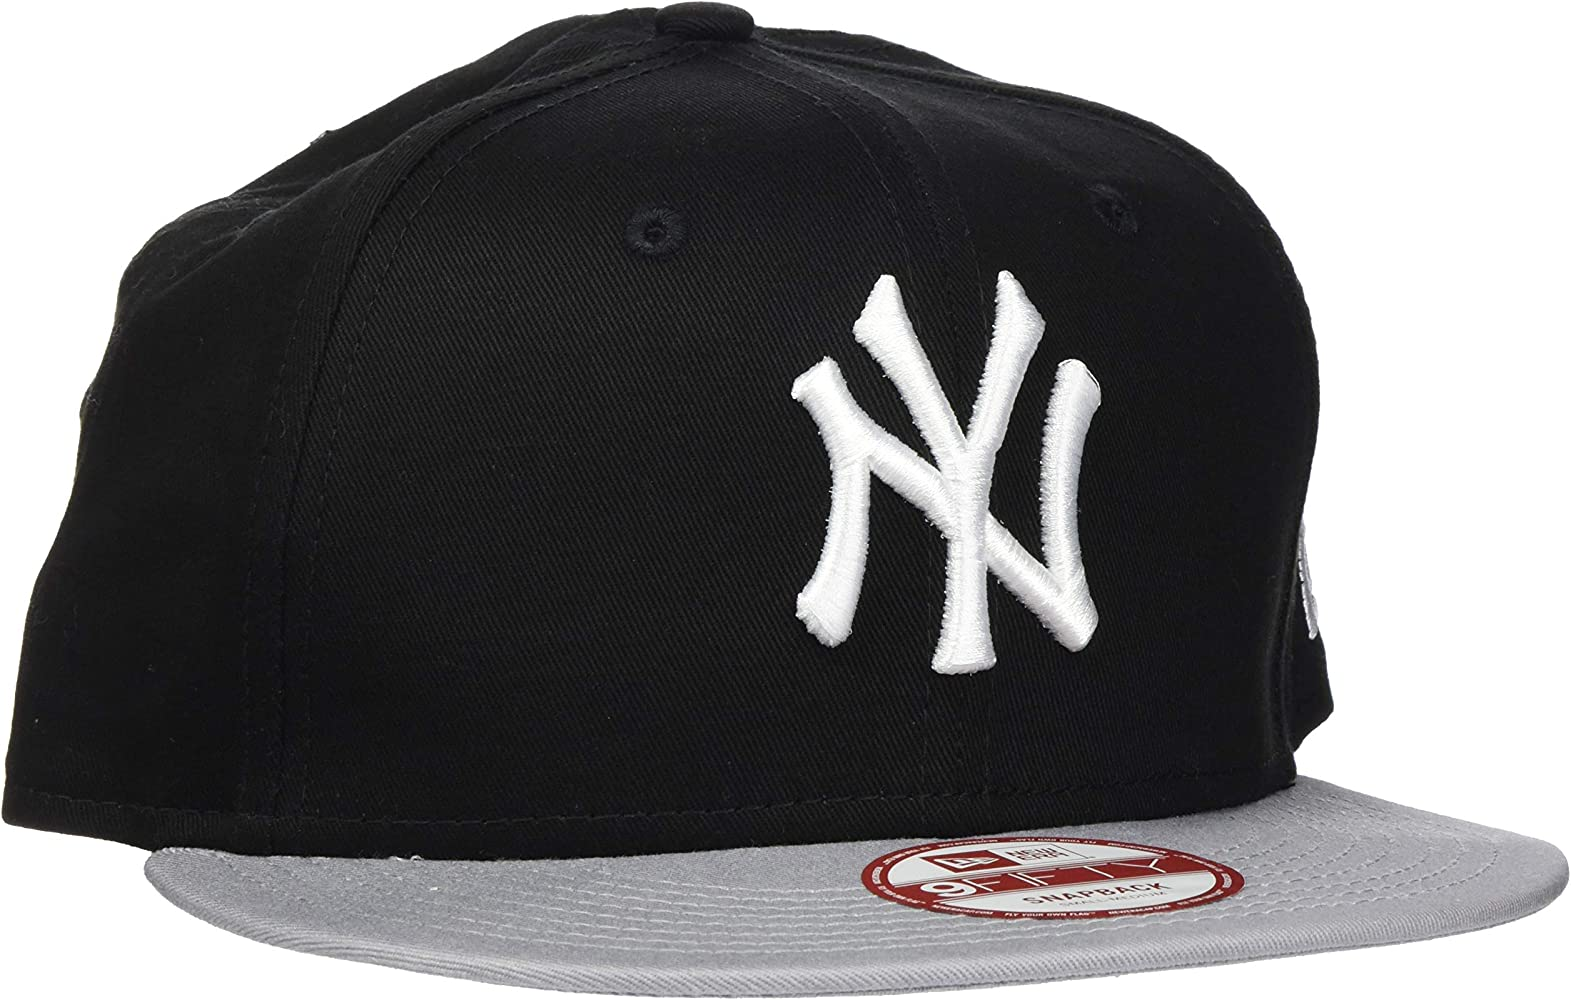 New Era 9Fifty - Gorra Unisex, Color Negro/Gris, Talla única ...